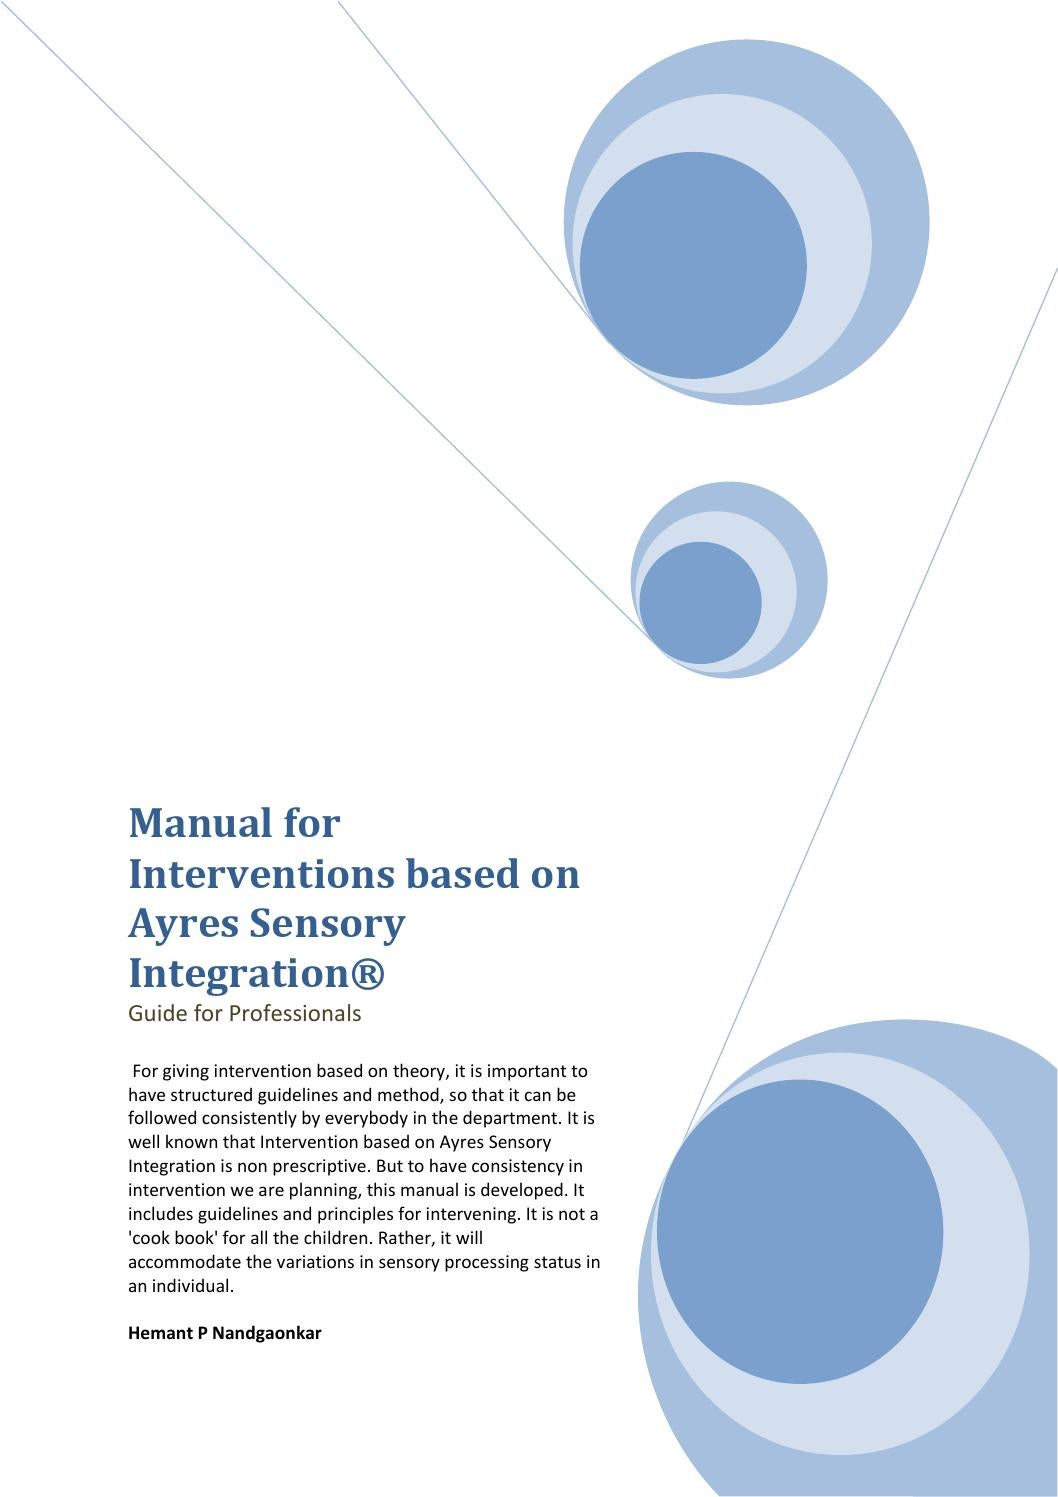 Manual for interventions based on ayres sensory integration by ...